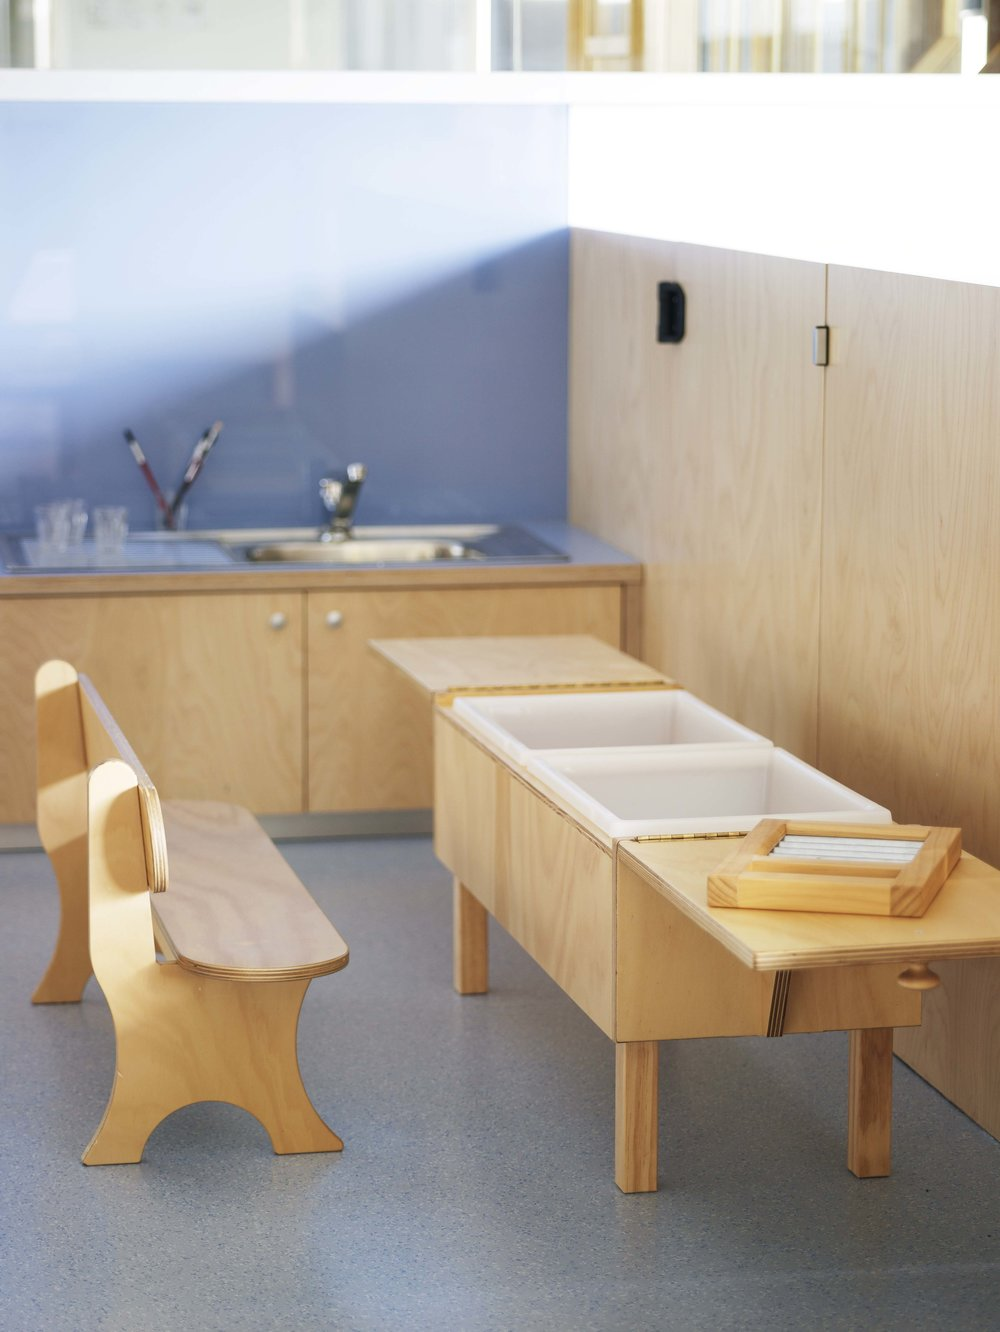 Montessori Schools Furniture by Koskela 009.jpg